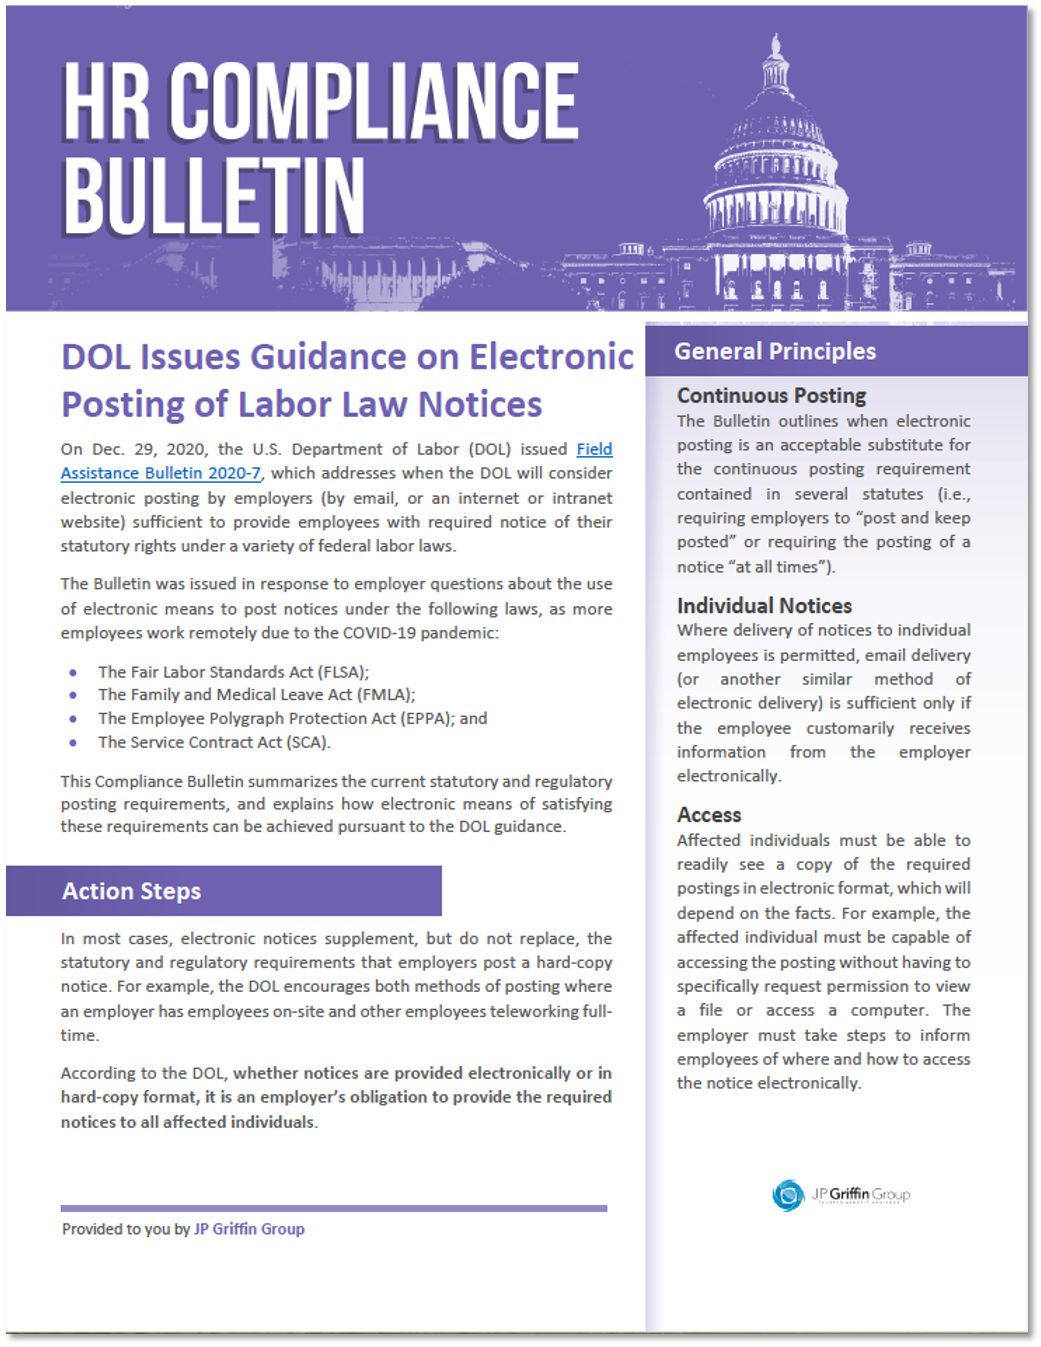 DOL Issues Guidance on Electronic Posting of Labor Law Notices